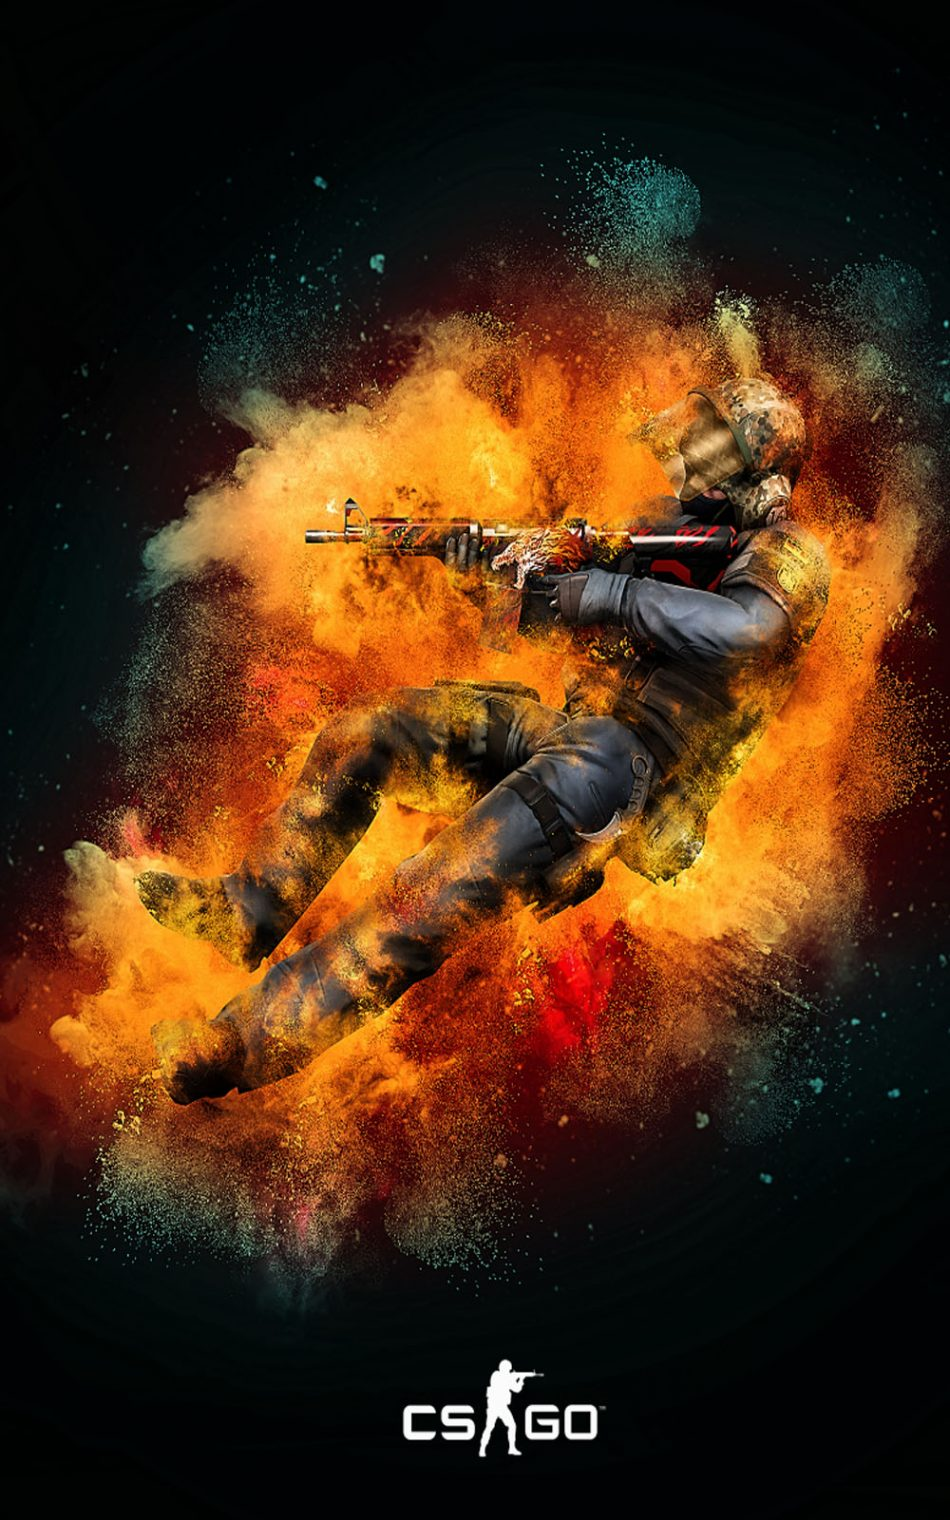 Download Counter Strike Global Offensive Free Pure 4k Ultra Hd